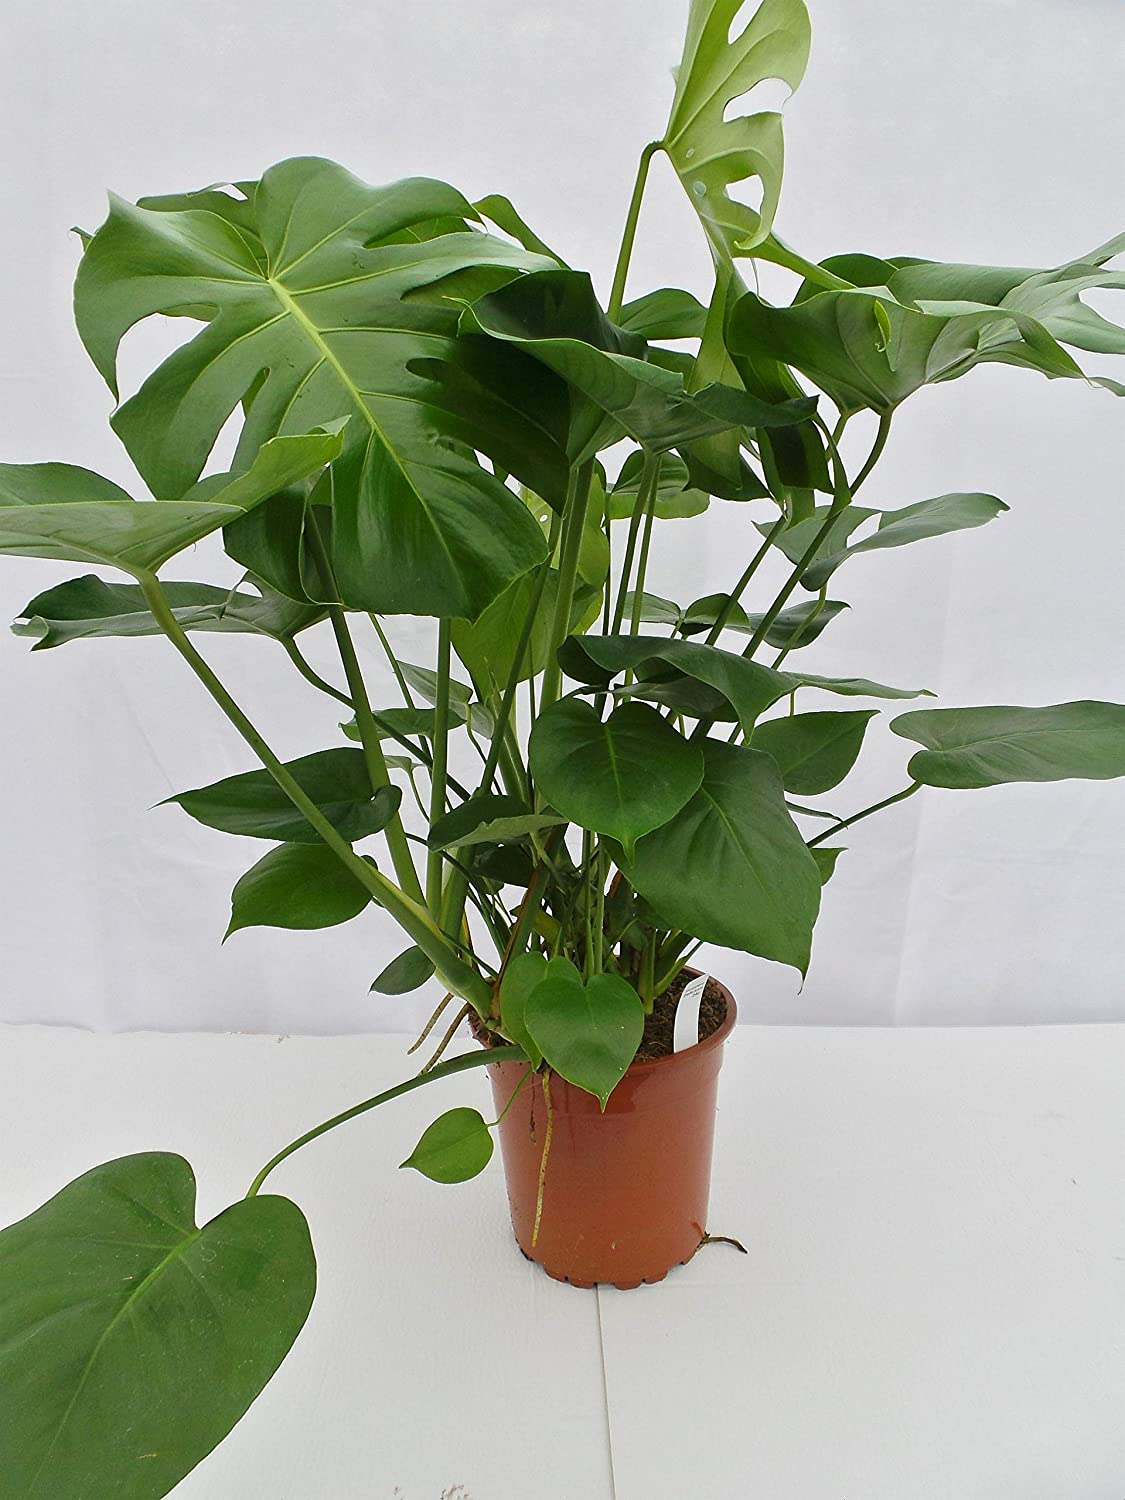 Perfect Plants Monstera Deliciosa Swiss Cheese 24 cm Pot, Green, 80 cm Perfect Plants Ltd - Dropship uk lawn and garden PESM3